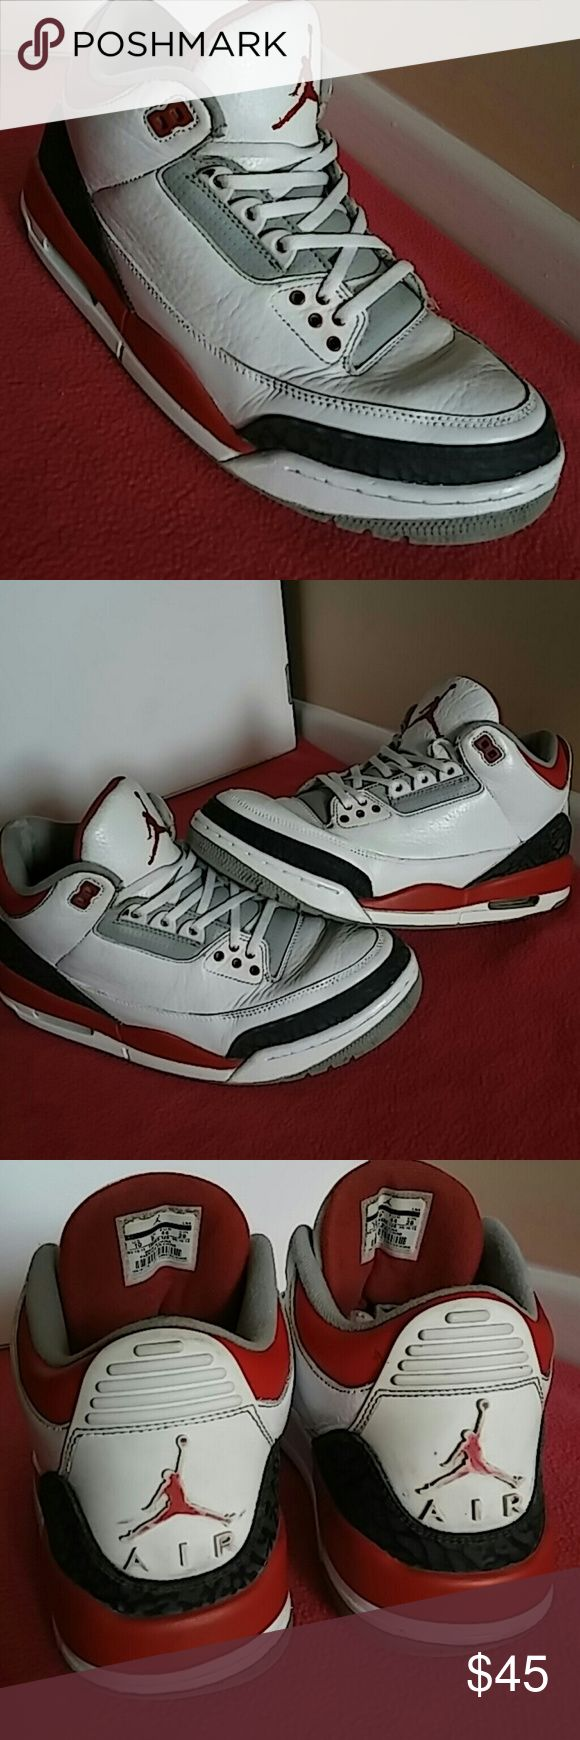 Nike Air Jordan 3 Retro Fire Red Cement Grey Black Shoes shows good amount of use. Upper leather in excellent shape without tear or blemishes. Scuffs on shoes have been given a facelift by a professional and shoes look great. Undersoles shoes shoe drag. SHOES is rated 6.5/10. Shoes # is 136064 120. Nike Shoes Sneakers